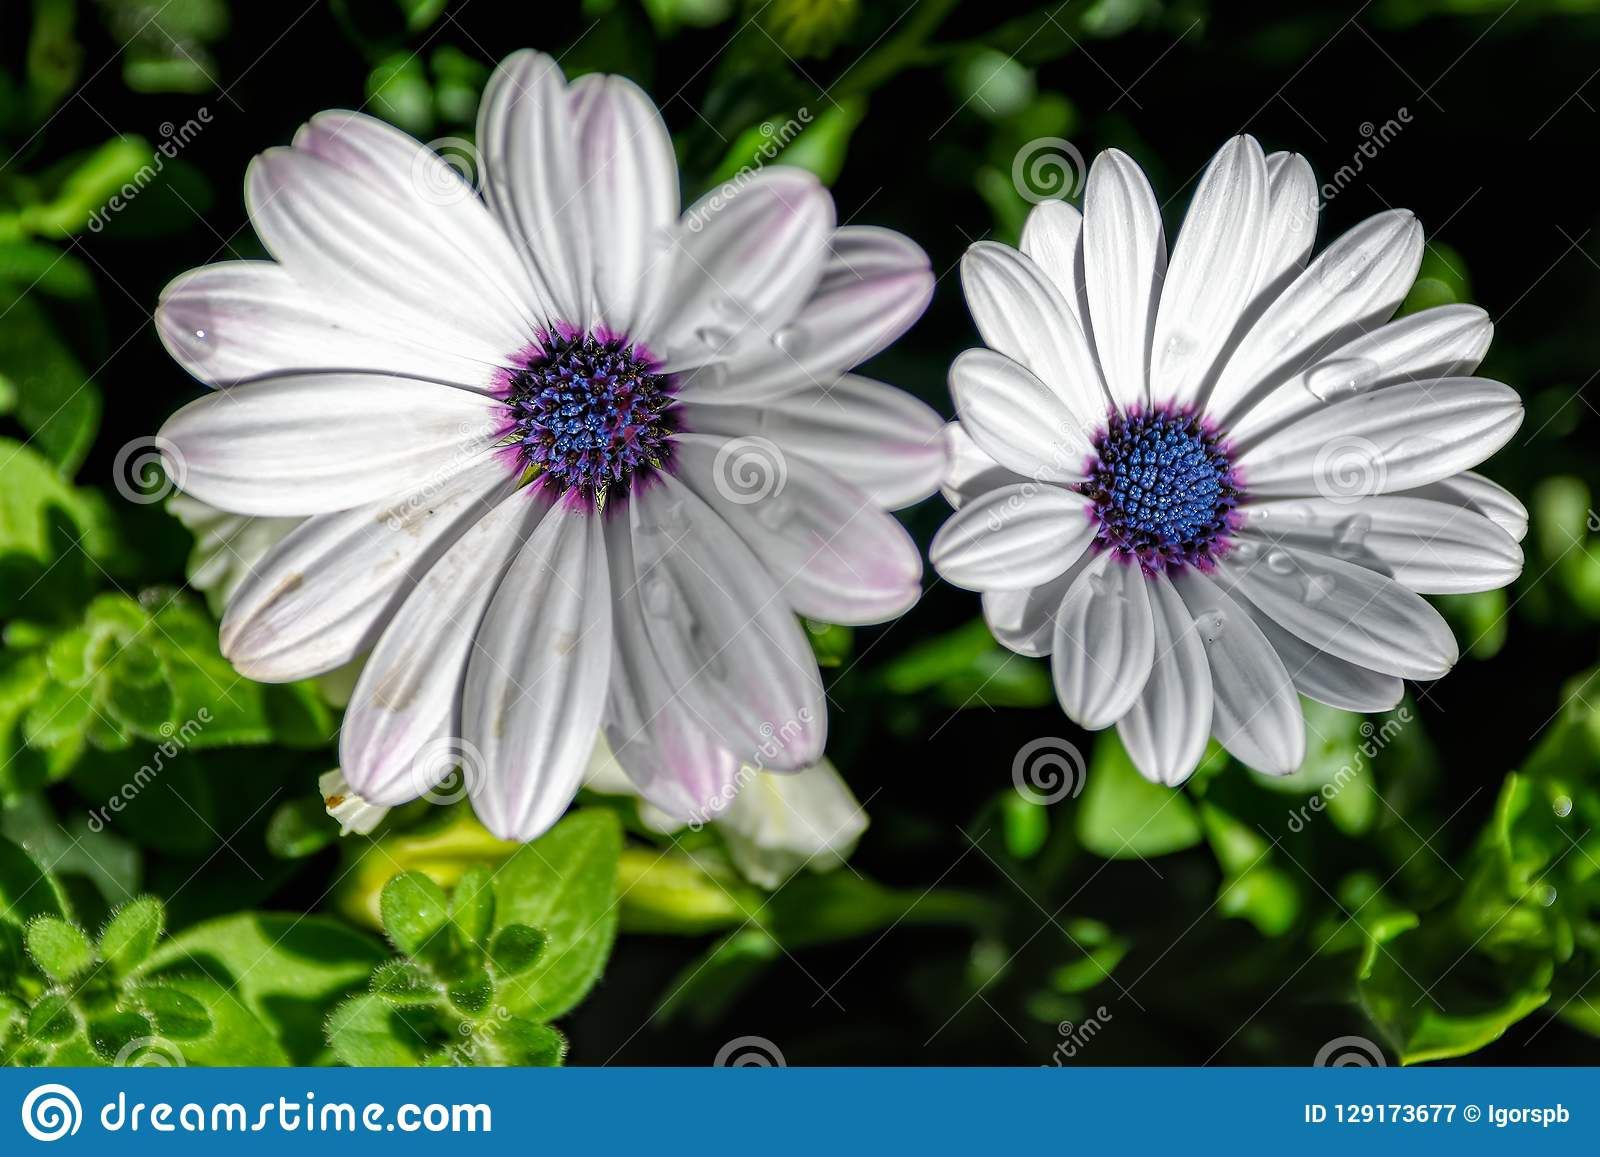 Large White Daisy With Blue Center Stock Image Image Of Oxeye